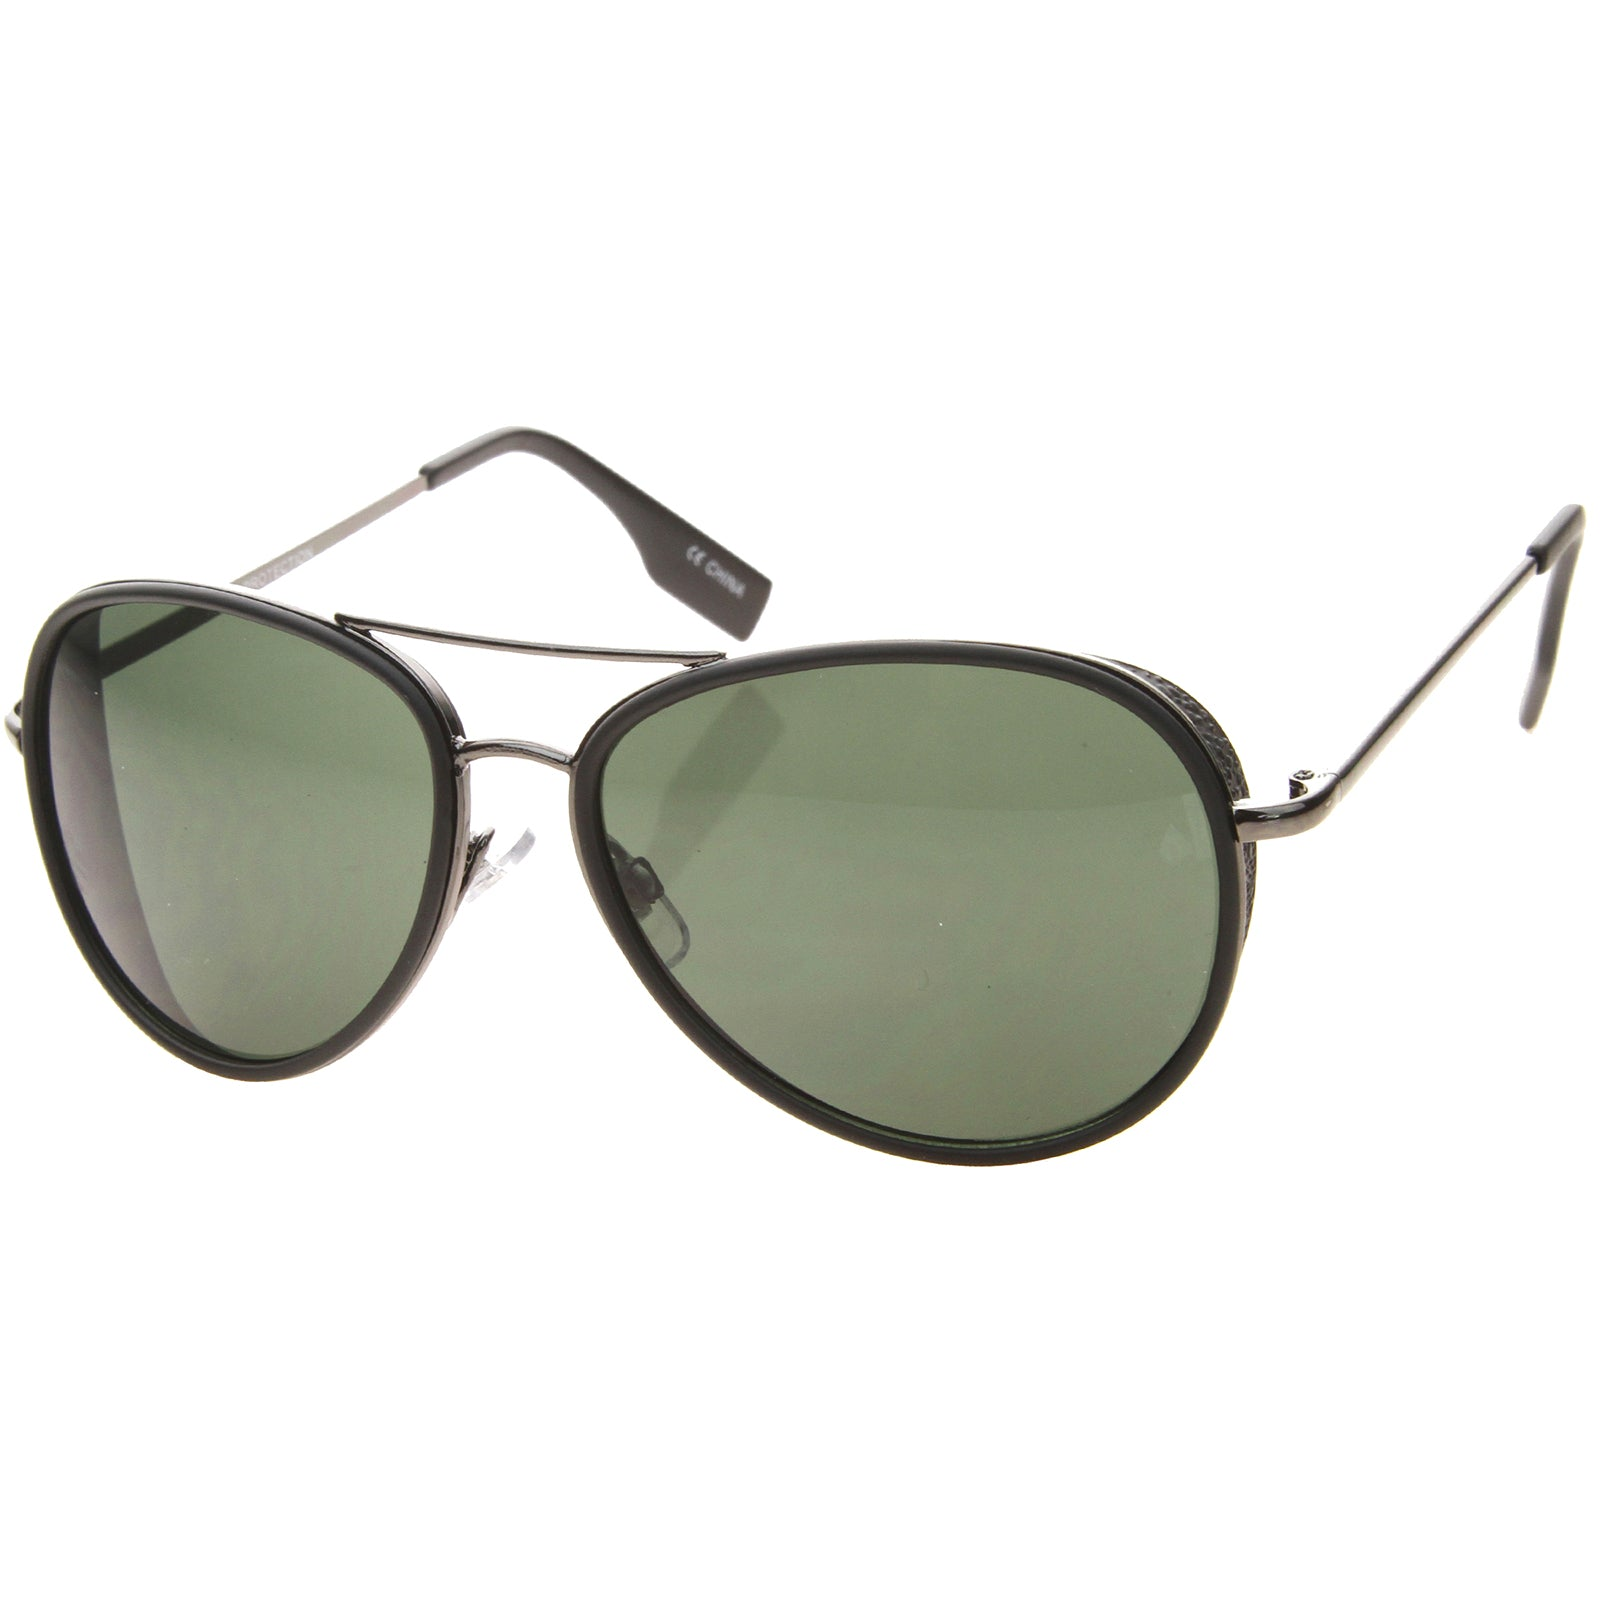 Womens Aviator Sunglasses With UV400 Protected Gradient Lens - sunglass.la - 14